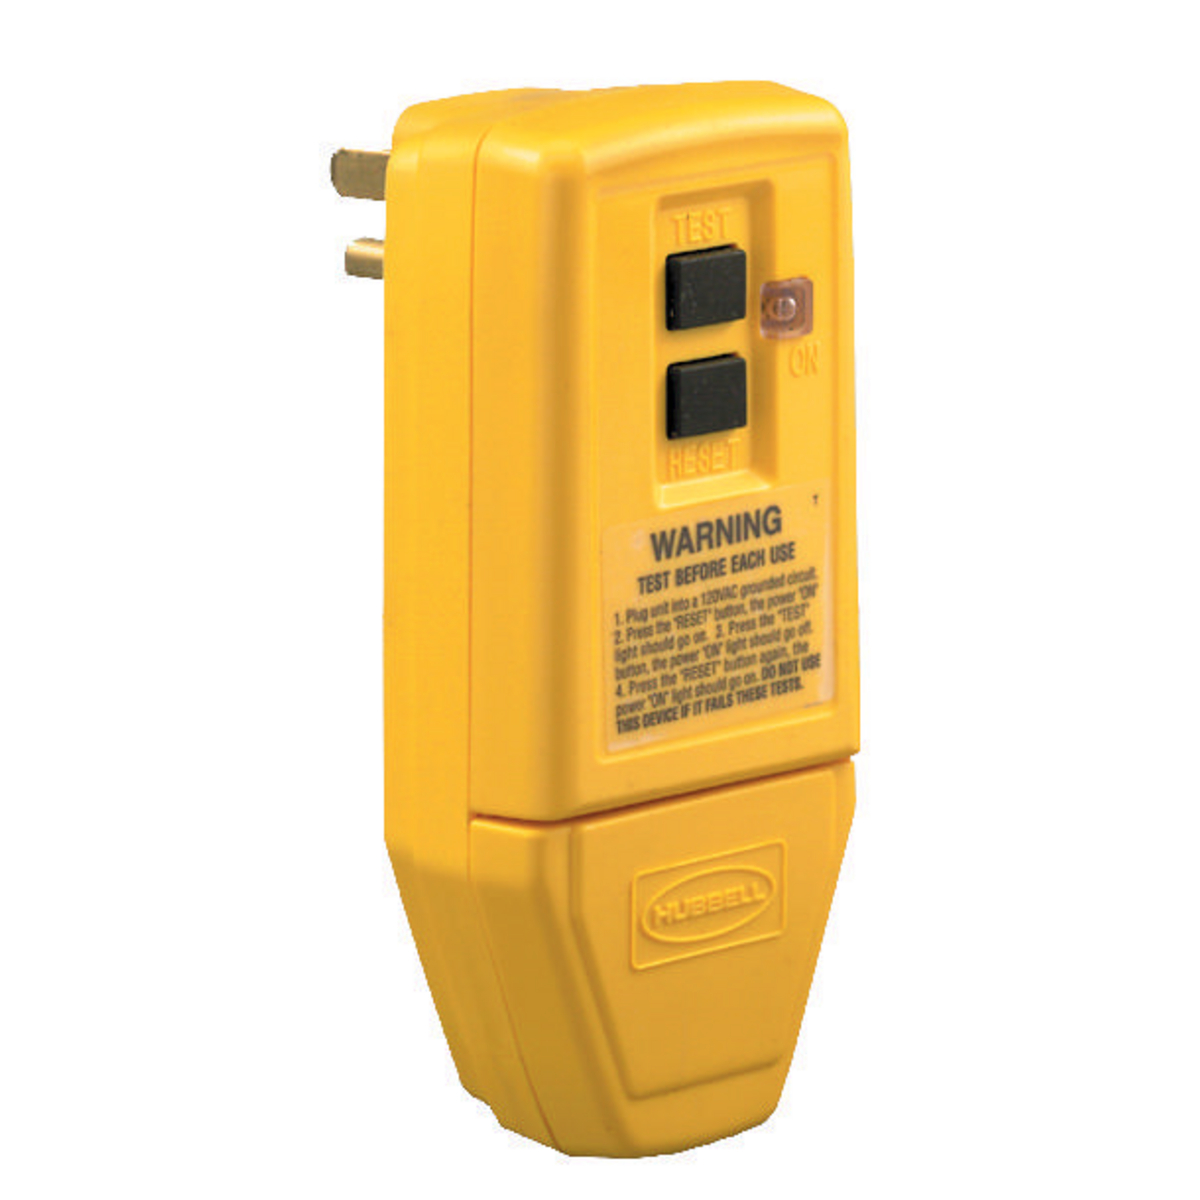 Hubbell GFP5266CY 15 Amp 125 Volt 2-Pole 3-Wire NEMA 5-15P Yellow Straight Blade Portable GFCI Plug